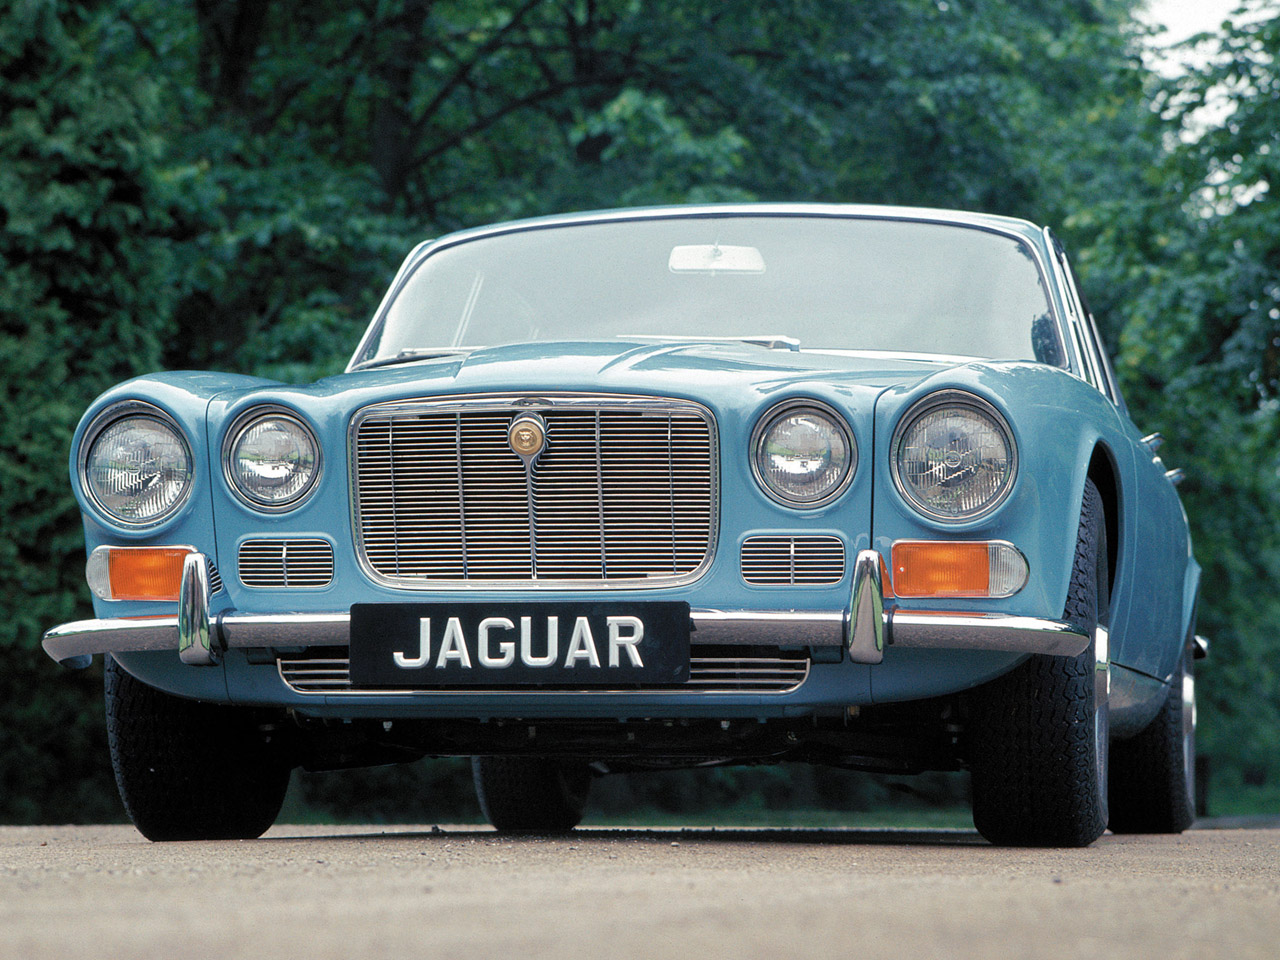 1990 Jaguar Xj-series #13